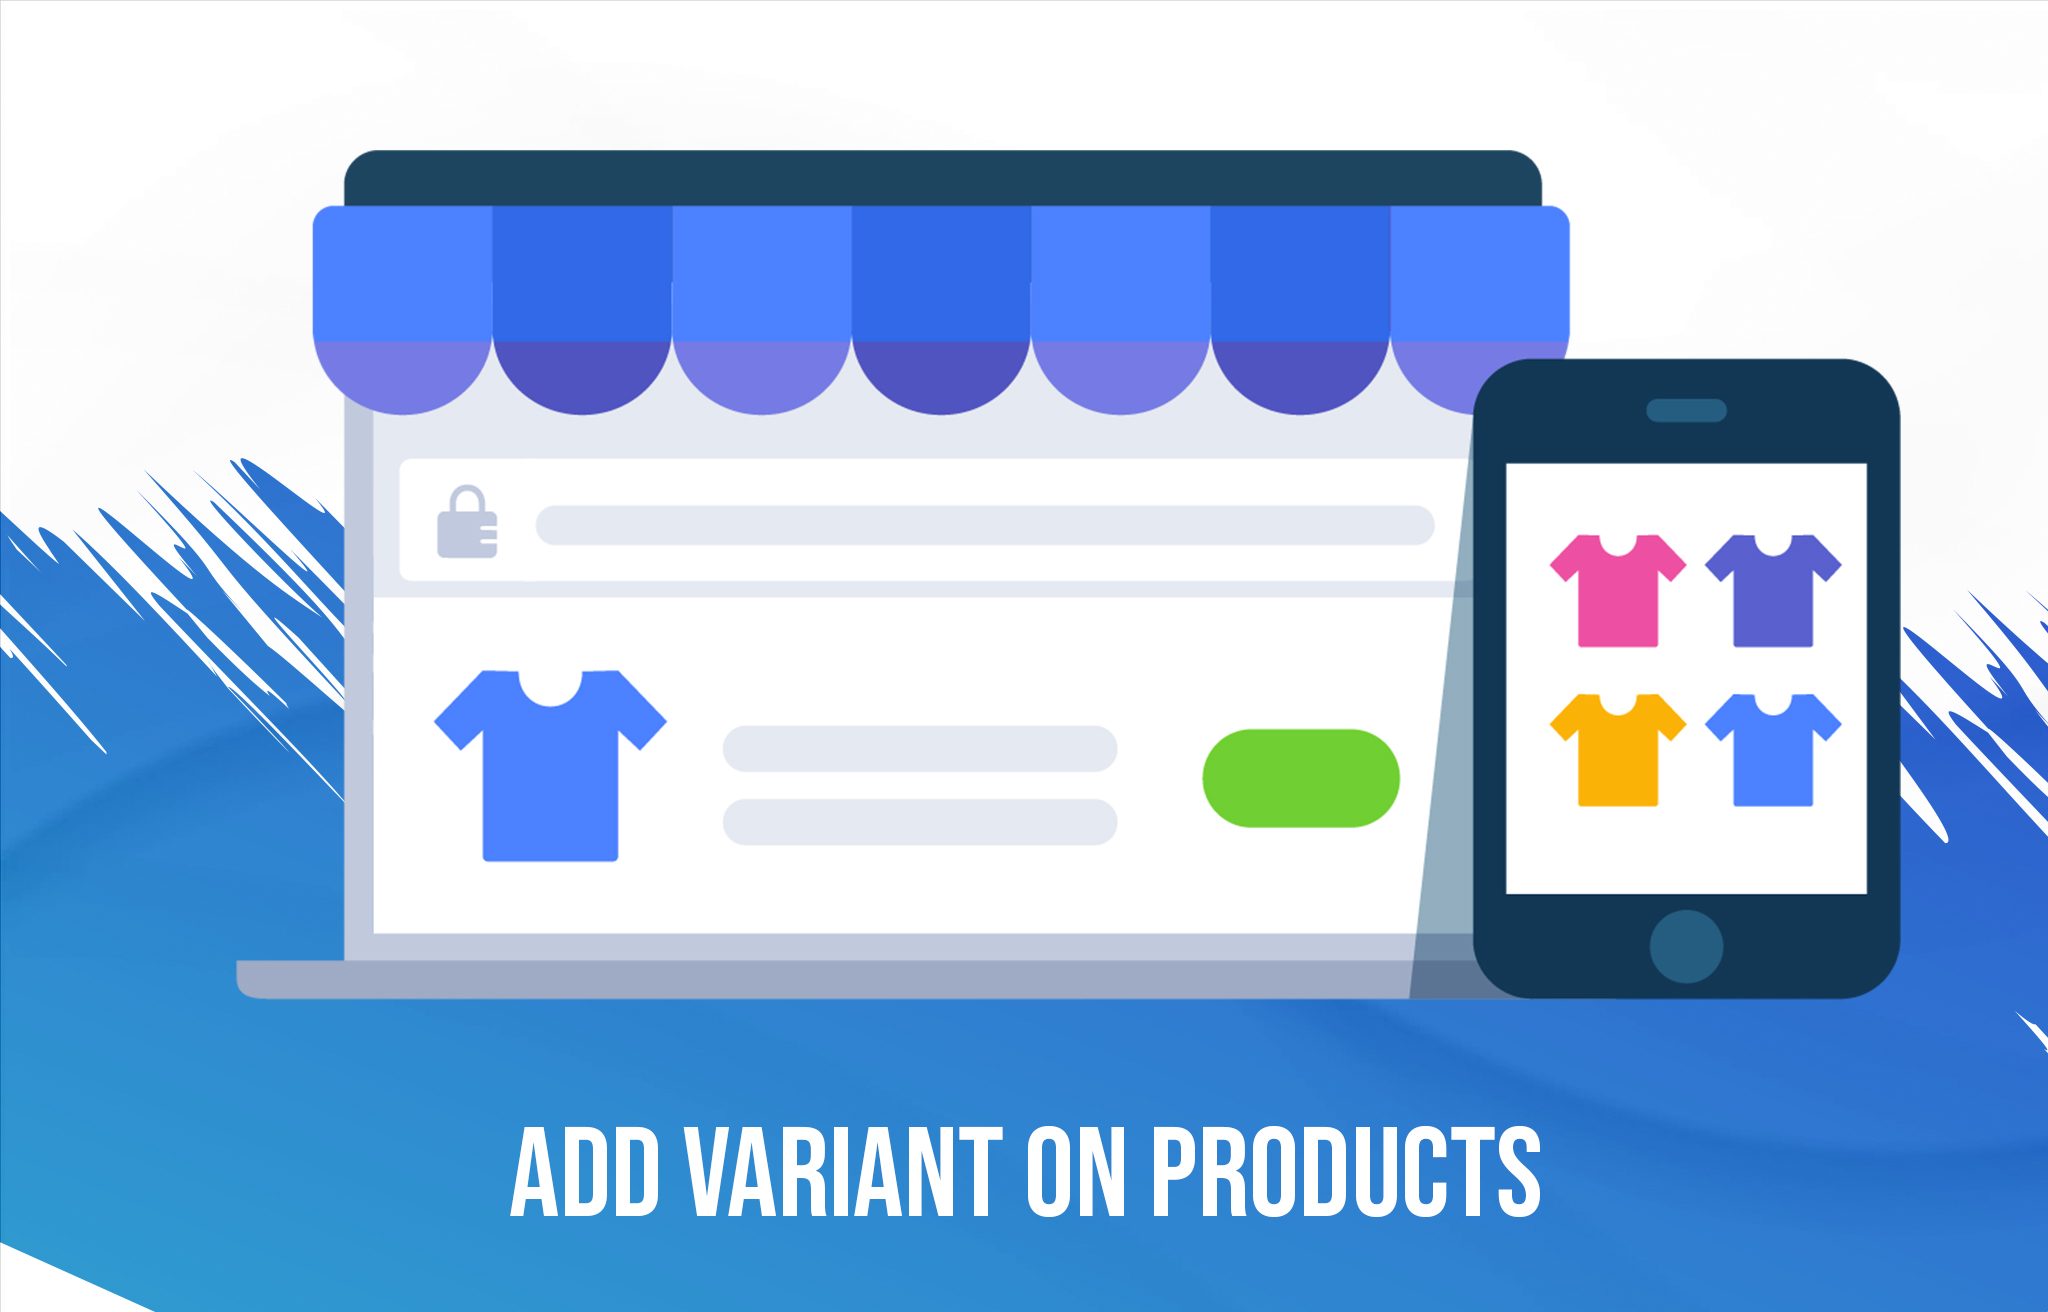 How to make Product Variants easy to Manage and